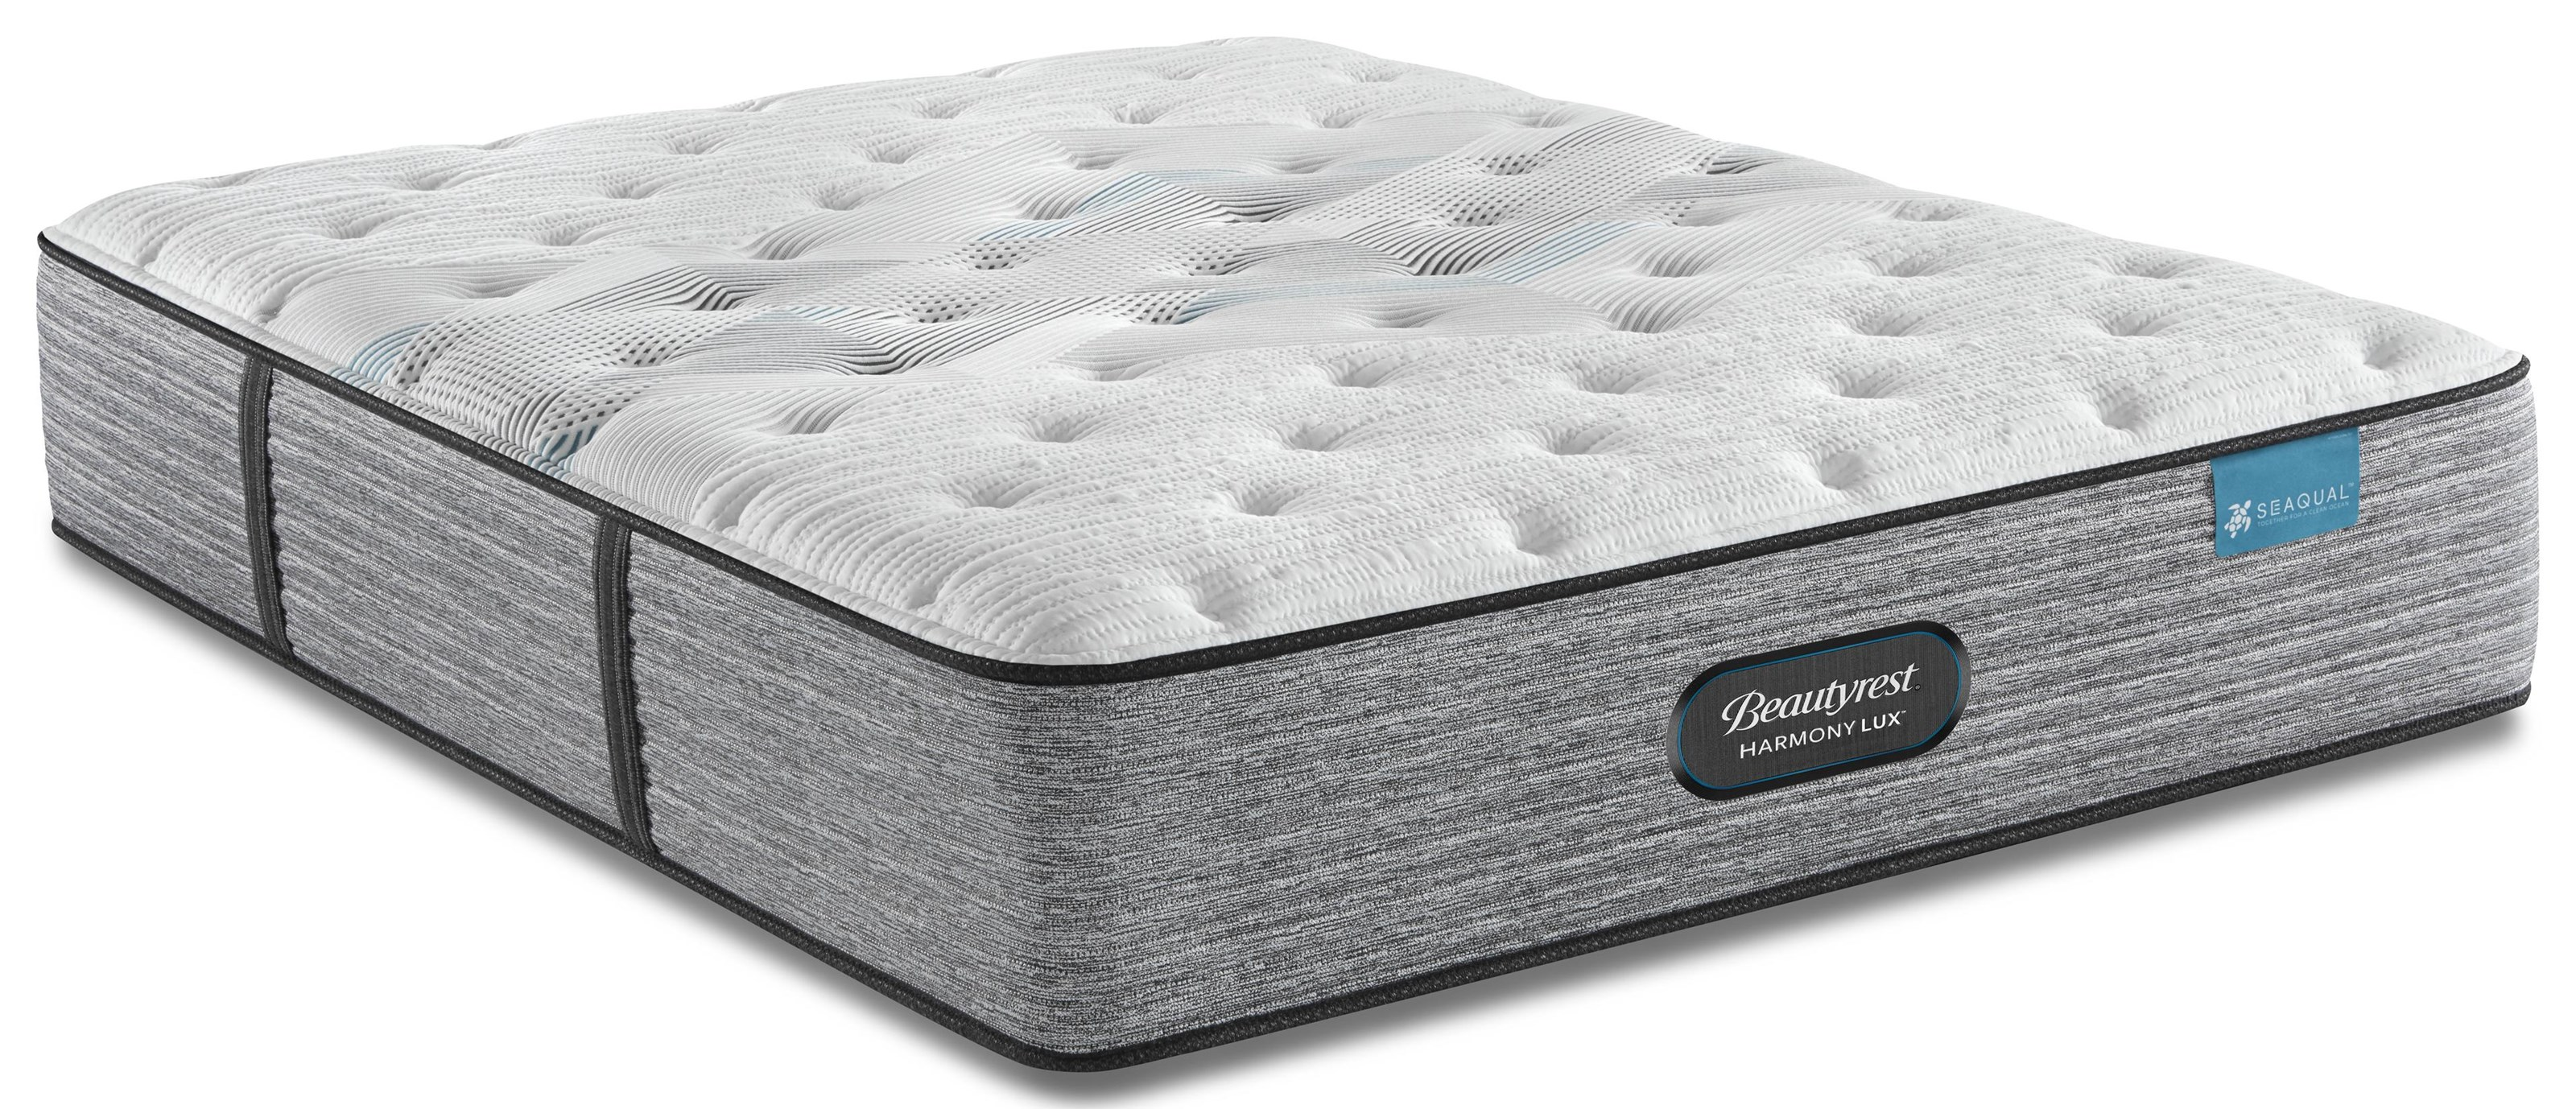 Harmony Lux Double Mattress Plush by Beautyrest Canada at Bennett's Furniture and Mattresses